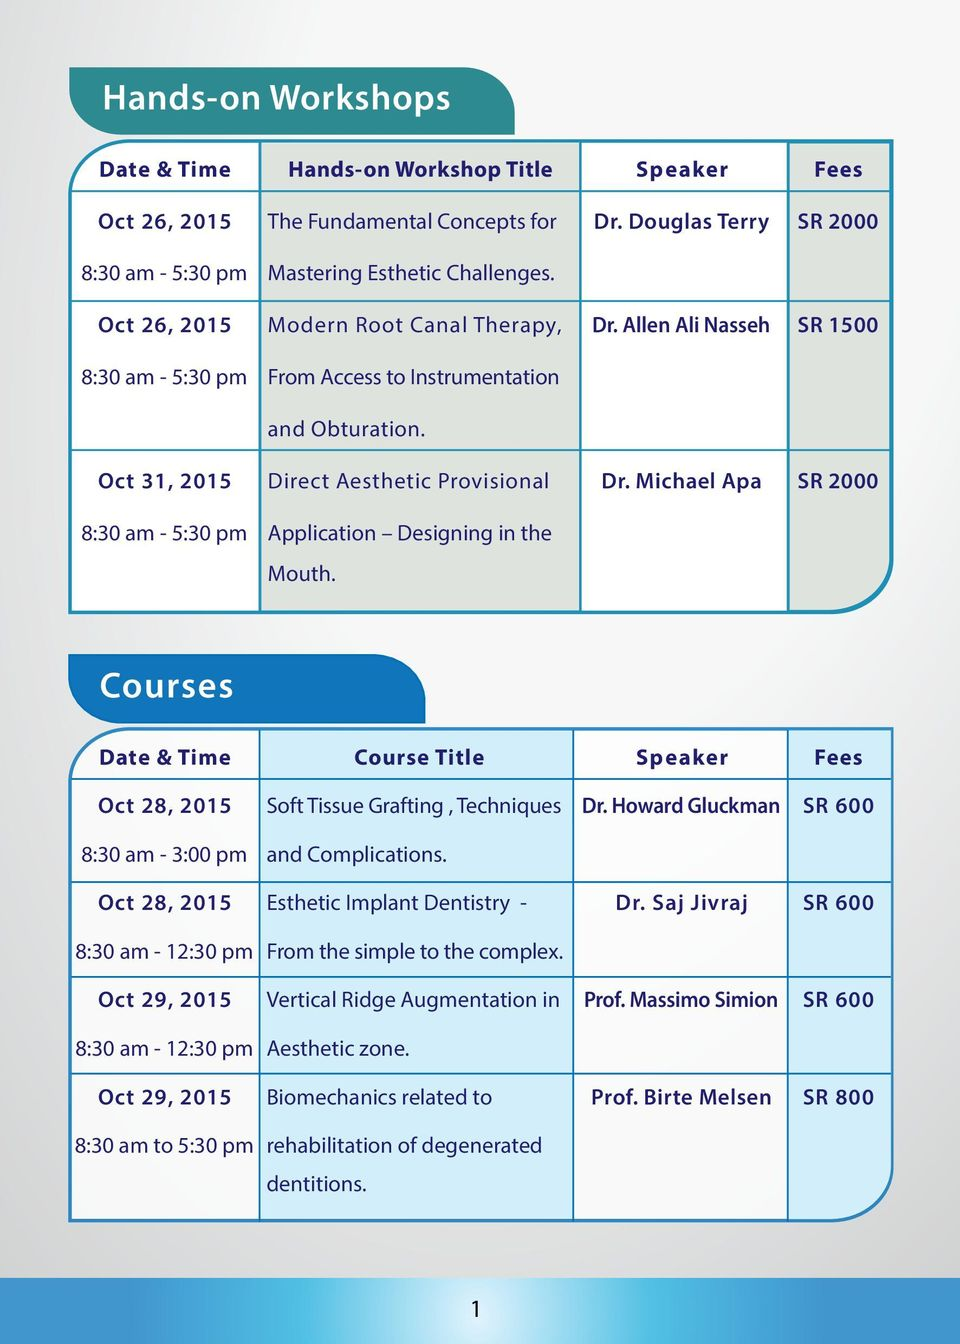 Michael Apa SR 2000 8:30 am - 5:30 pm Application Designing in the Mouth. Courses Course Title Oct 28, 2015 Soft Tissue Grafting, Techniques Dr. Howard Gluckman 8:30 am - 3:00 pm and Complications.